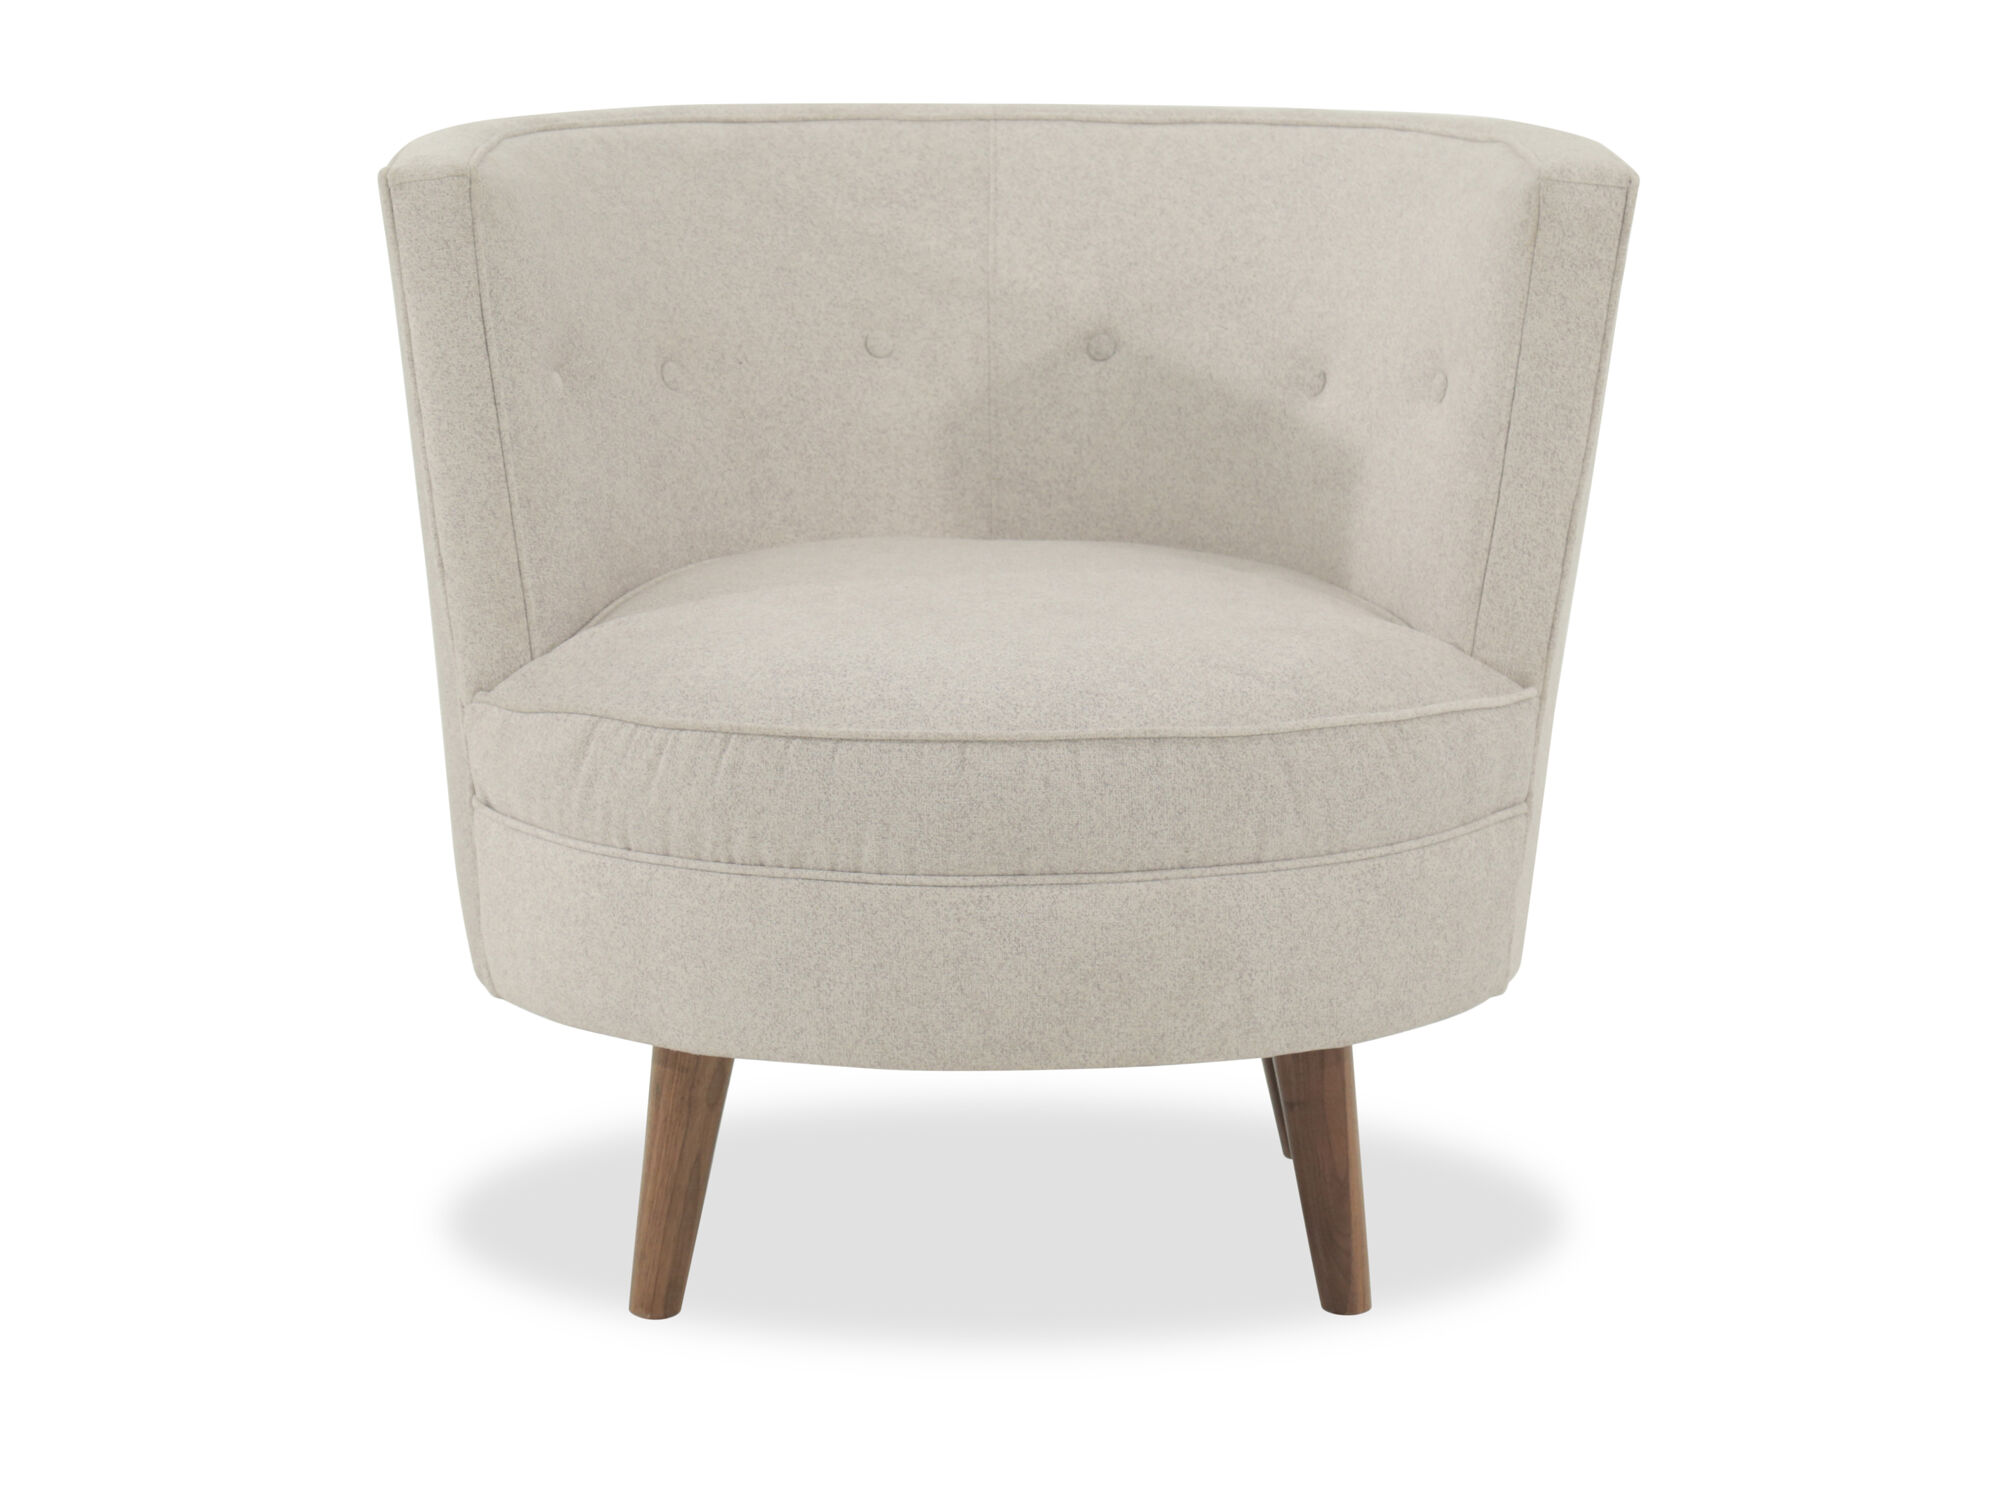 Genial Images Barrel Style Casual 35u0026quot; Swivel Chair In Cream Barrel Style  Casual 35u0026quot; Swivel Chair In Cream